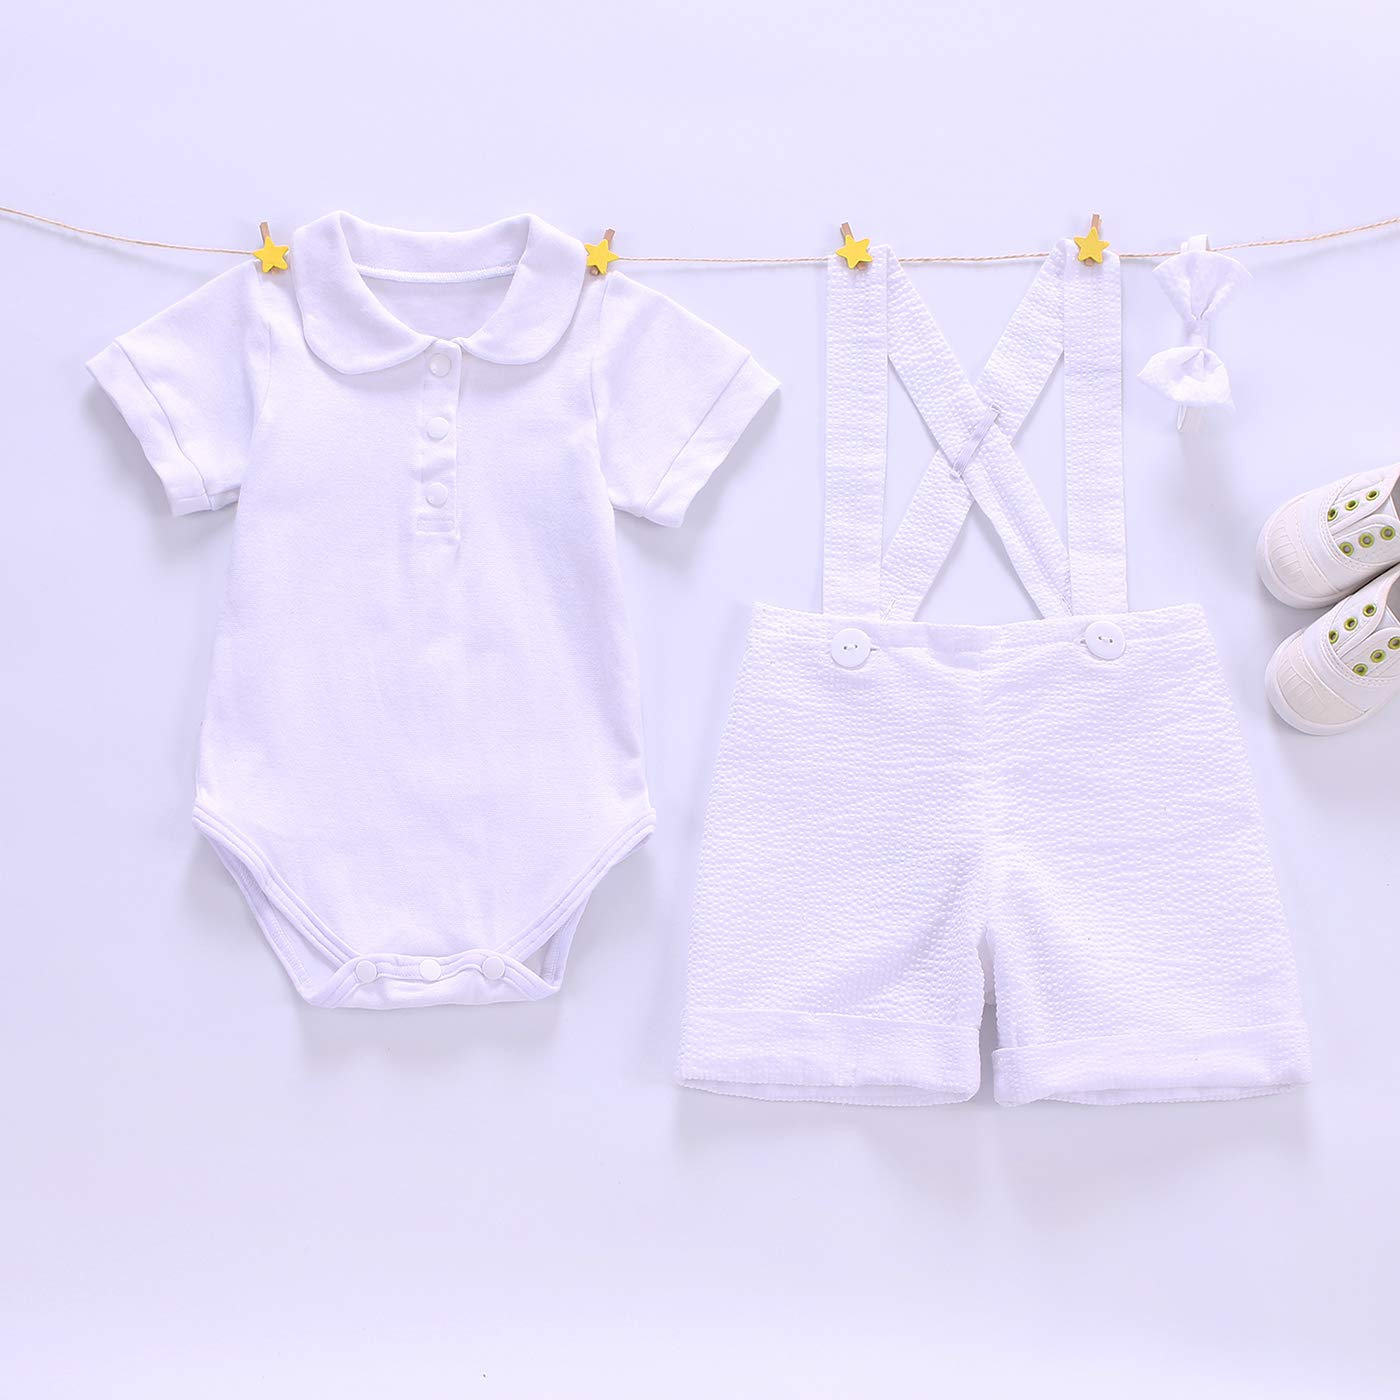 Euro Bear White Baptism Suits for Baby Boy Christening Gown Boys